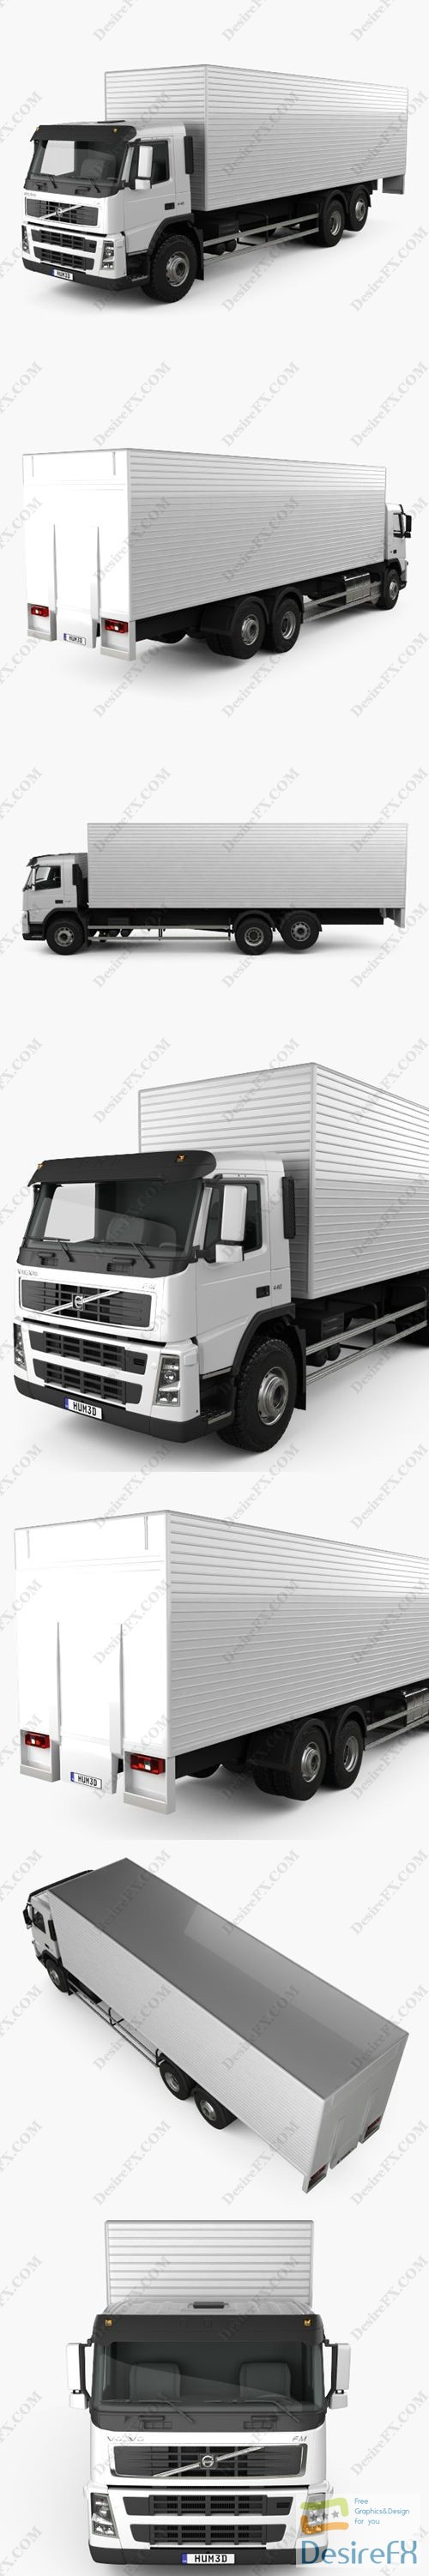 Volvo FM Truck 6x2 Delivery 2010 3D Model